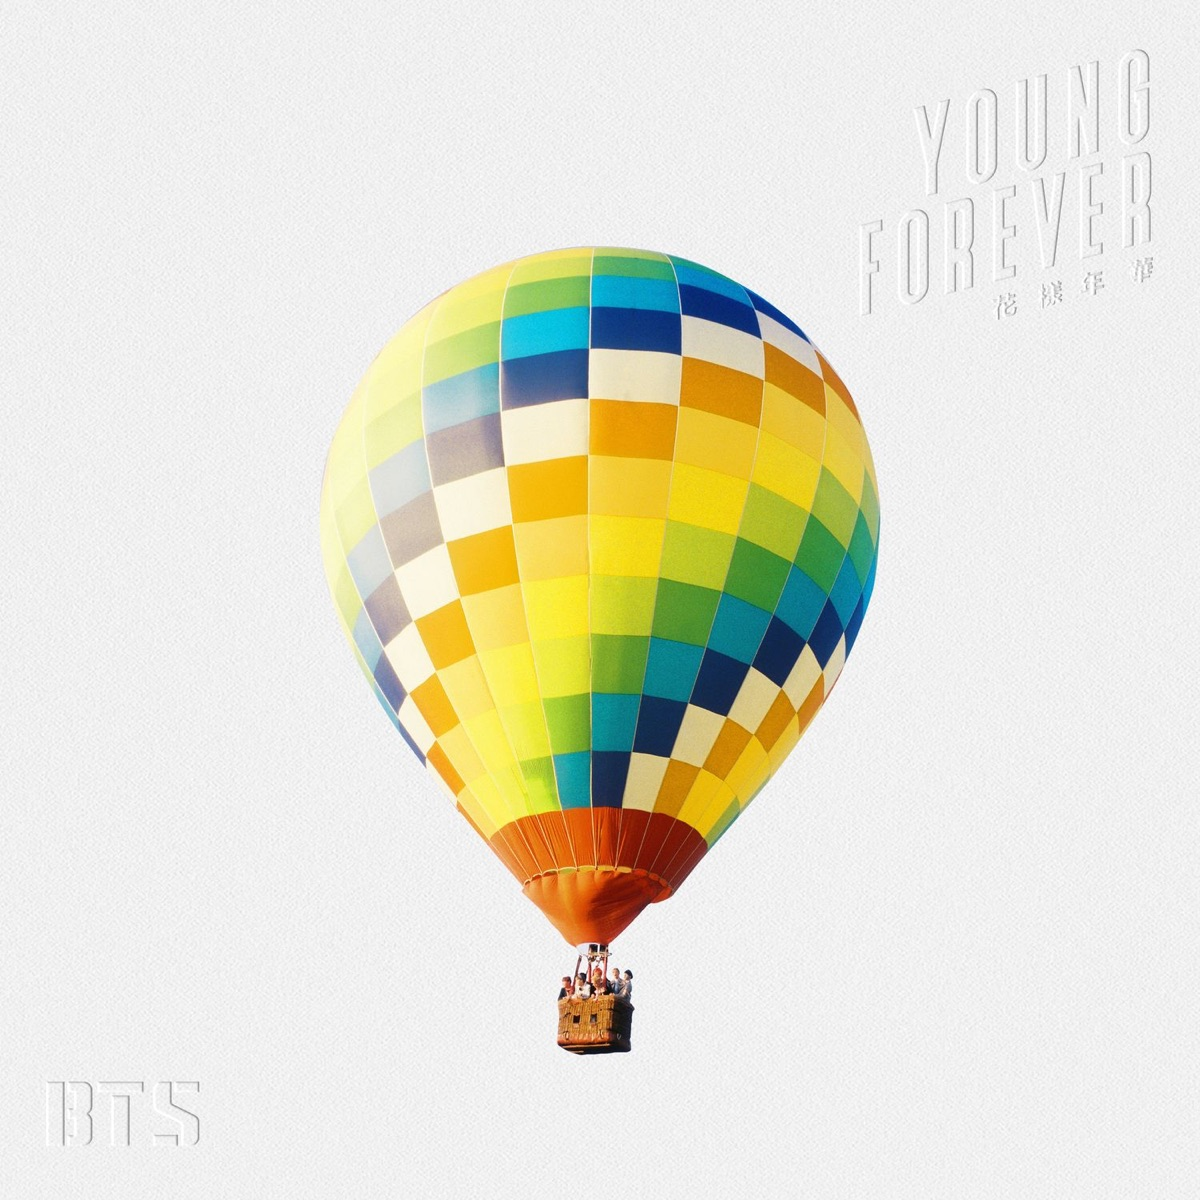 The Most Beautiful Moment in Life Young Forever BTS CD cover